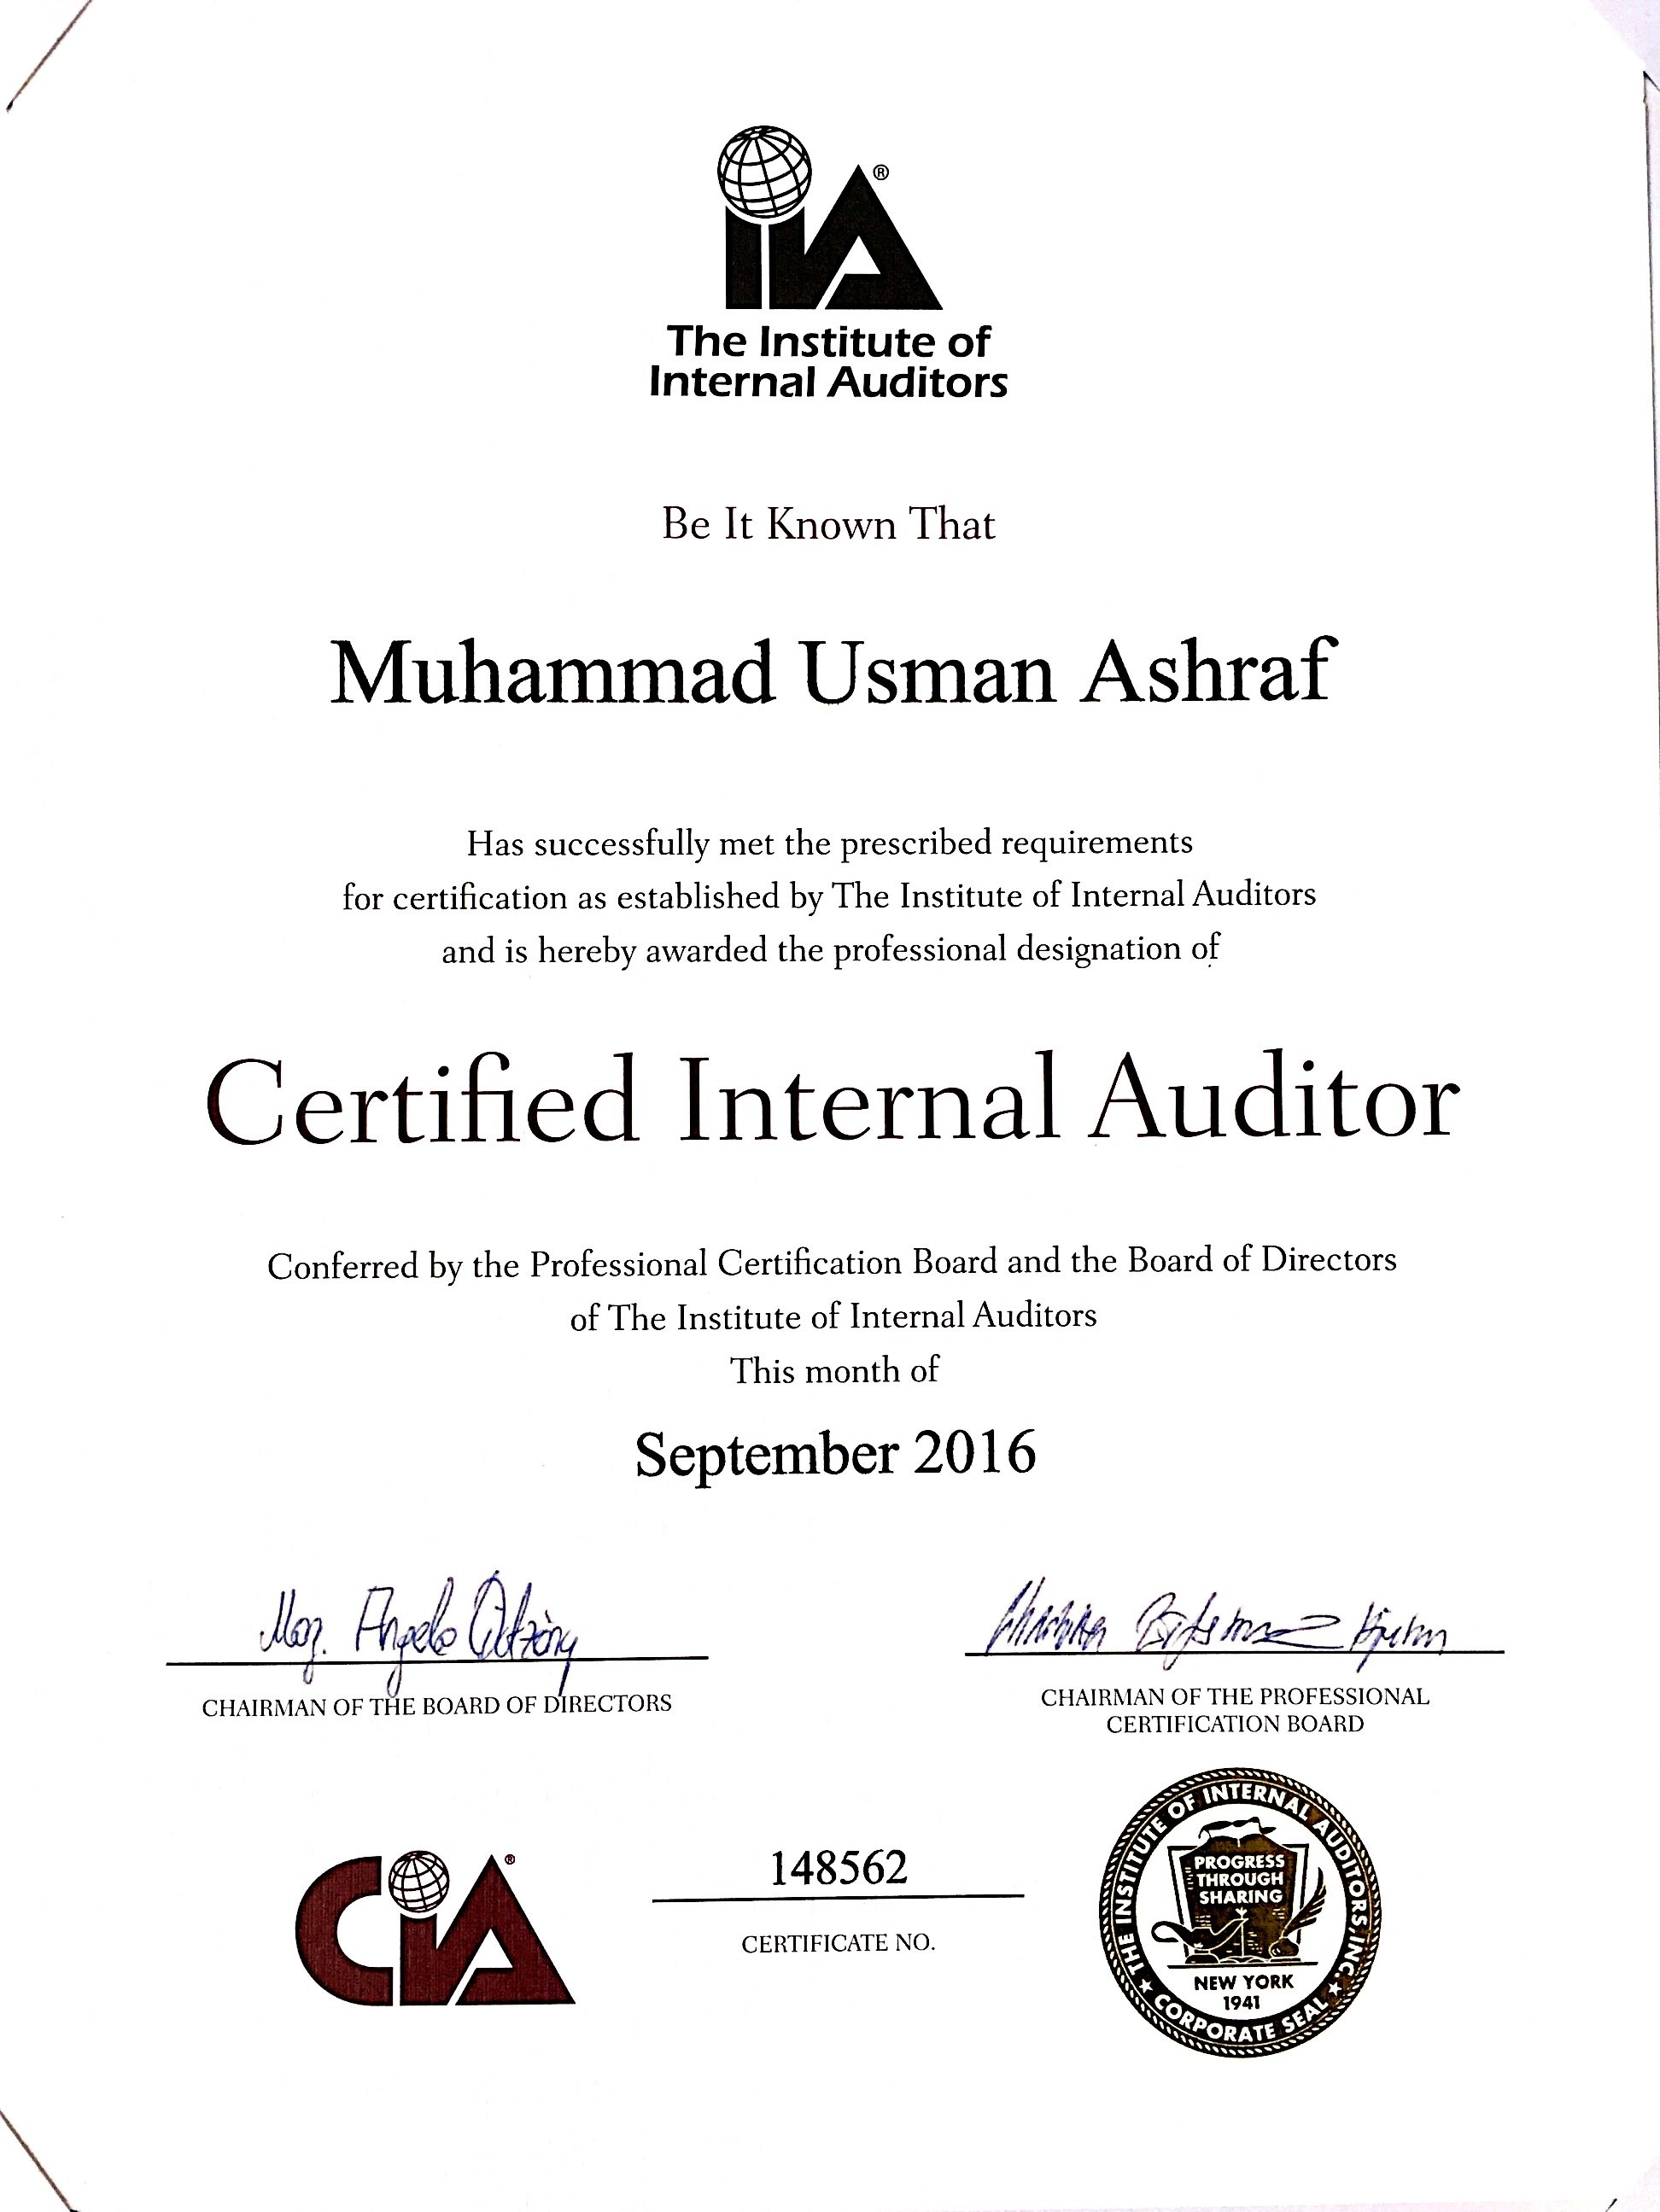 Certified Internal Auditor Certificate Related Keywords